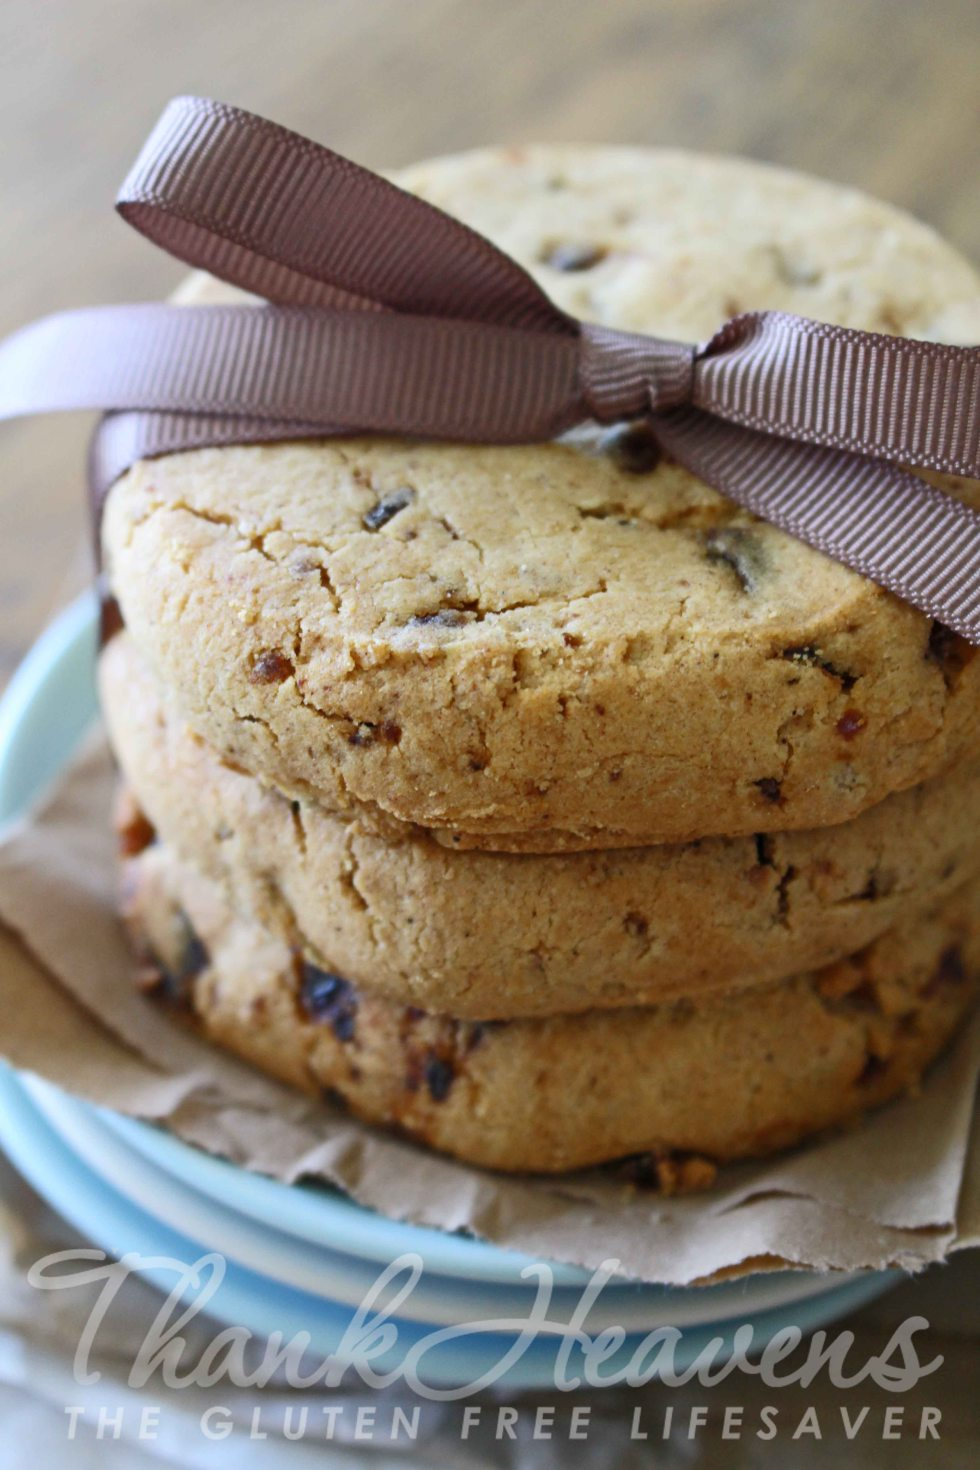 Gluten-Free, Preservative-Free Cafe Cookies!